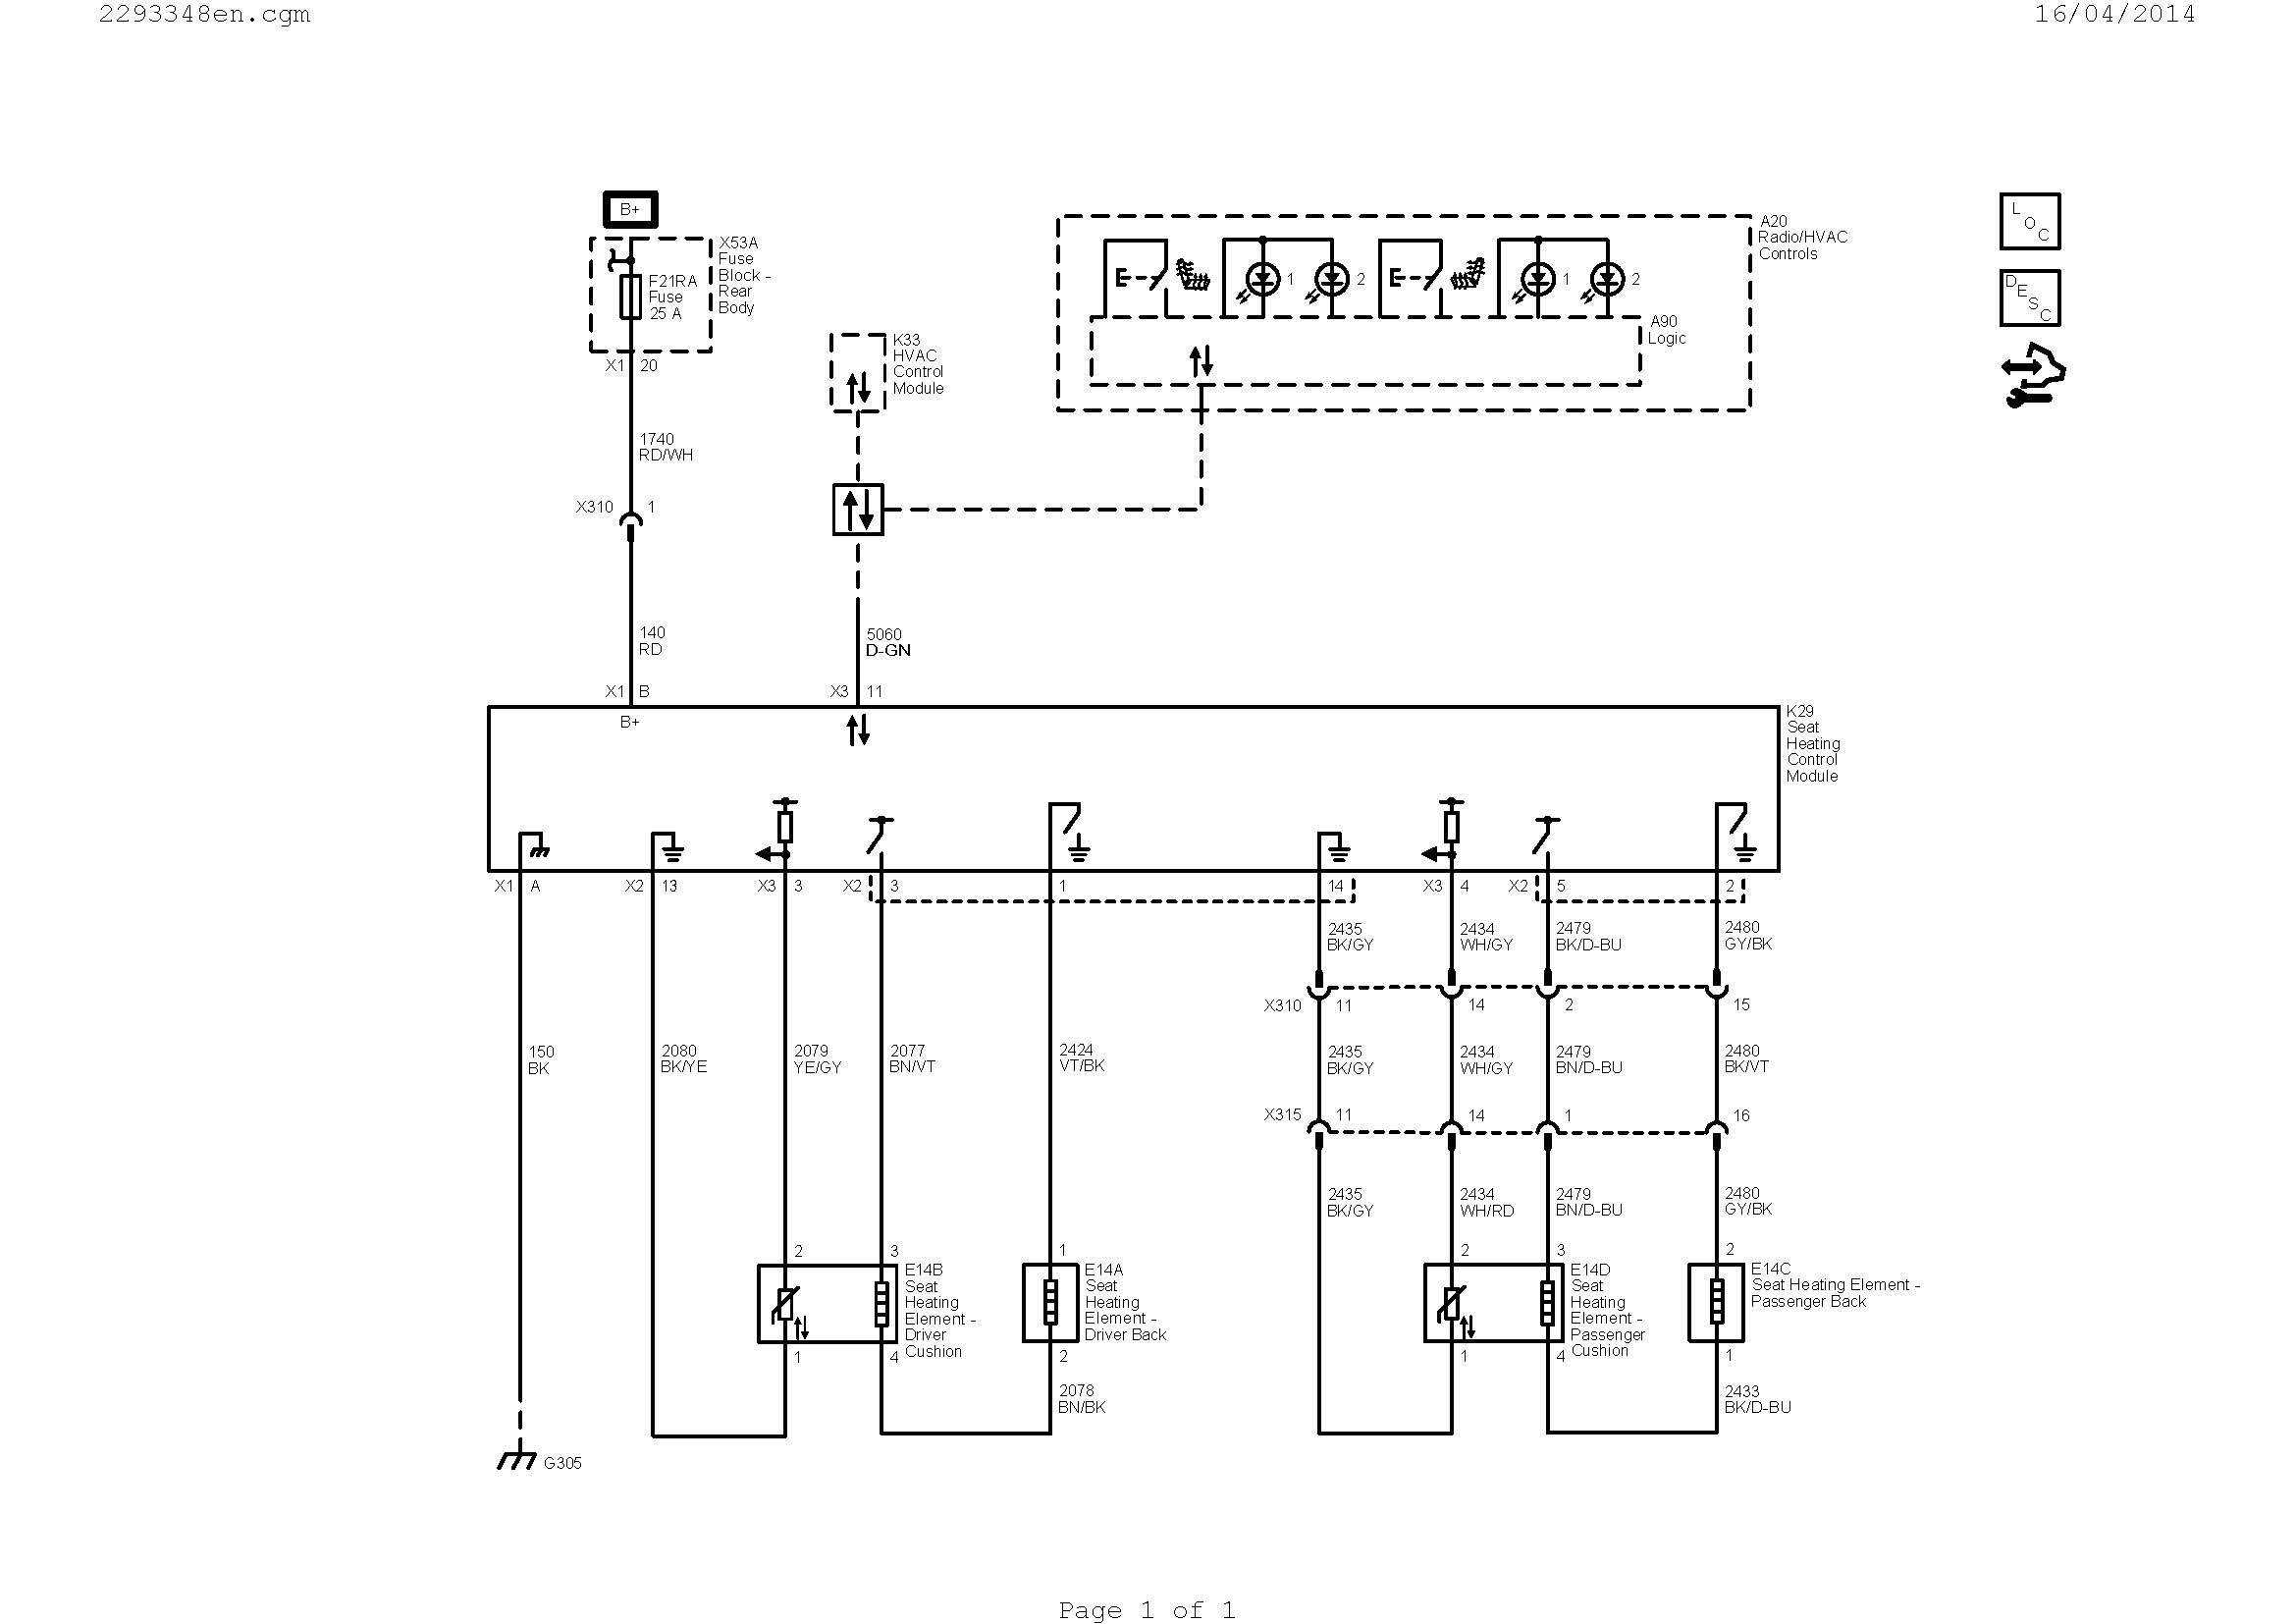 acme transformer t 1 81051 wiring diagram Collection-fan wiring diagram Collection Wiring Diagram For Changeover Relay Inspirationa Wiring Diagram Ac Valid Hvac DOWNLOAD Wiring Diagram 20-b